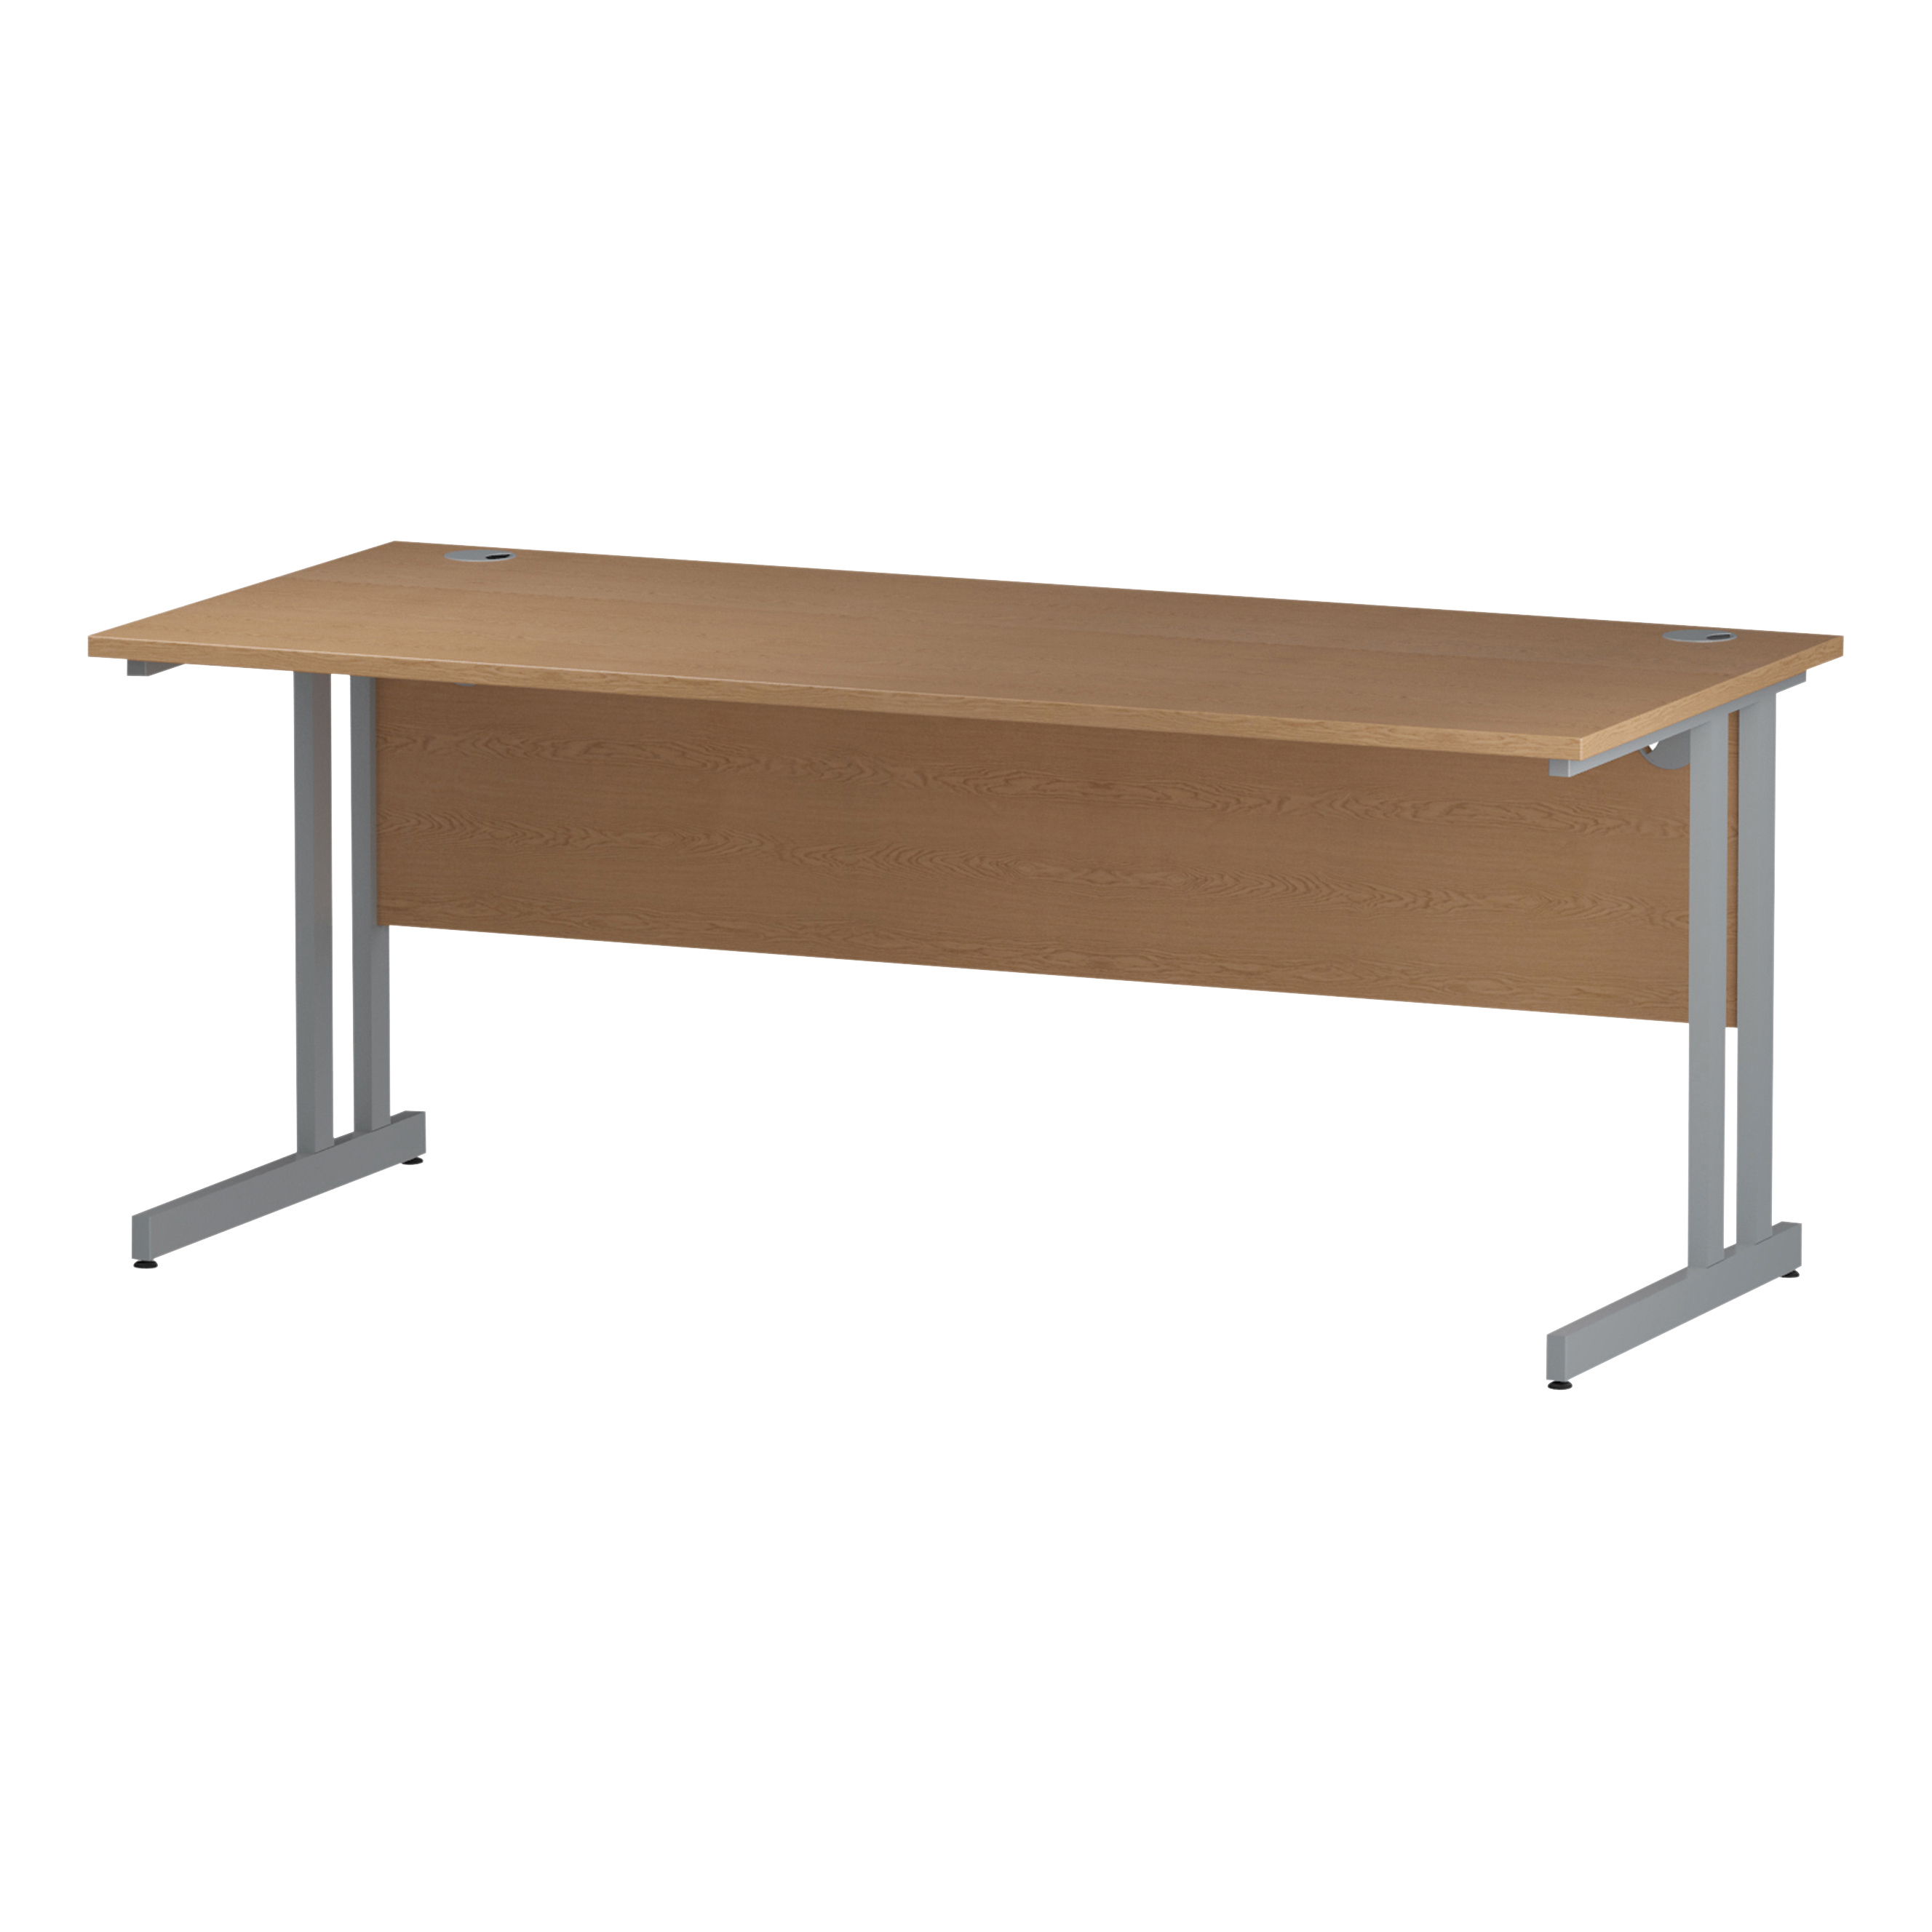 Trexus Rectangular Desk Silver Cantilever Leg 1800x800mm Oak Ref I000809